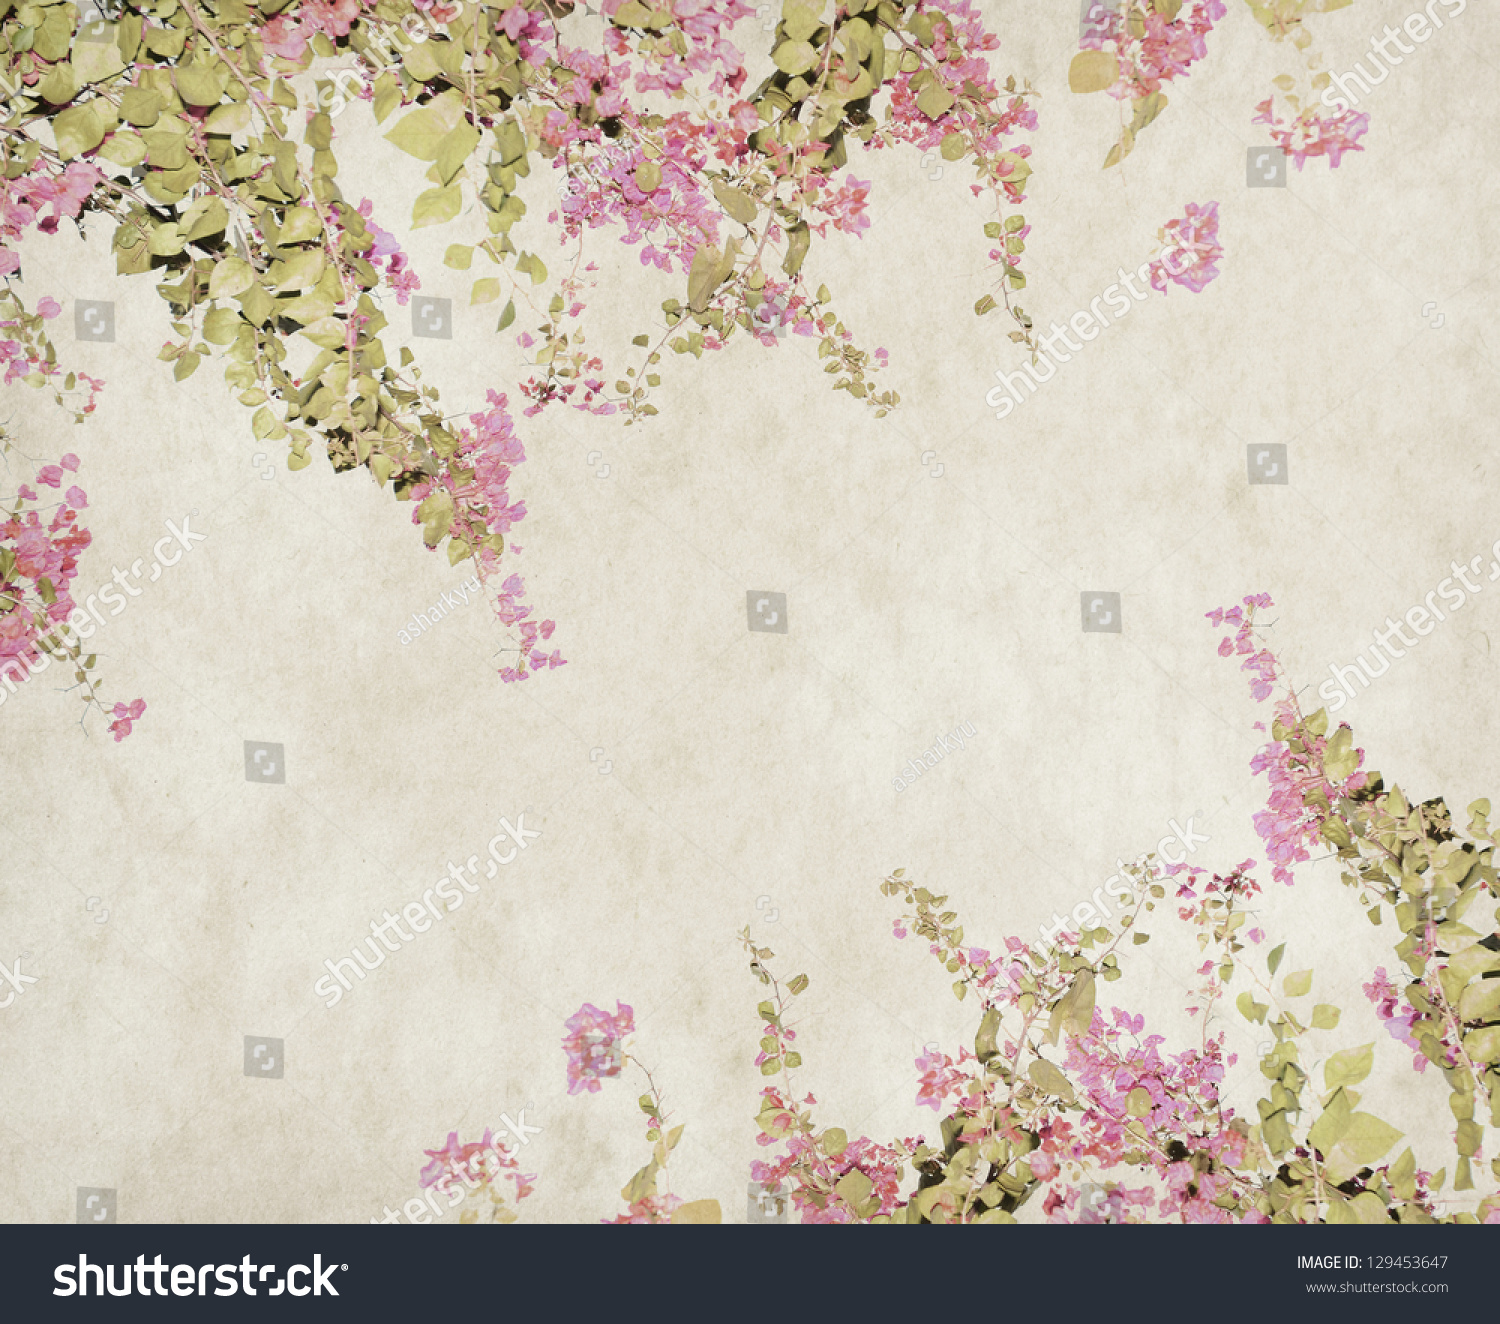 Flower Blossom On Old Antique Vintage Paper Background